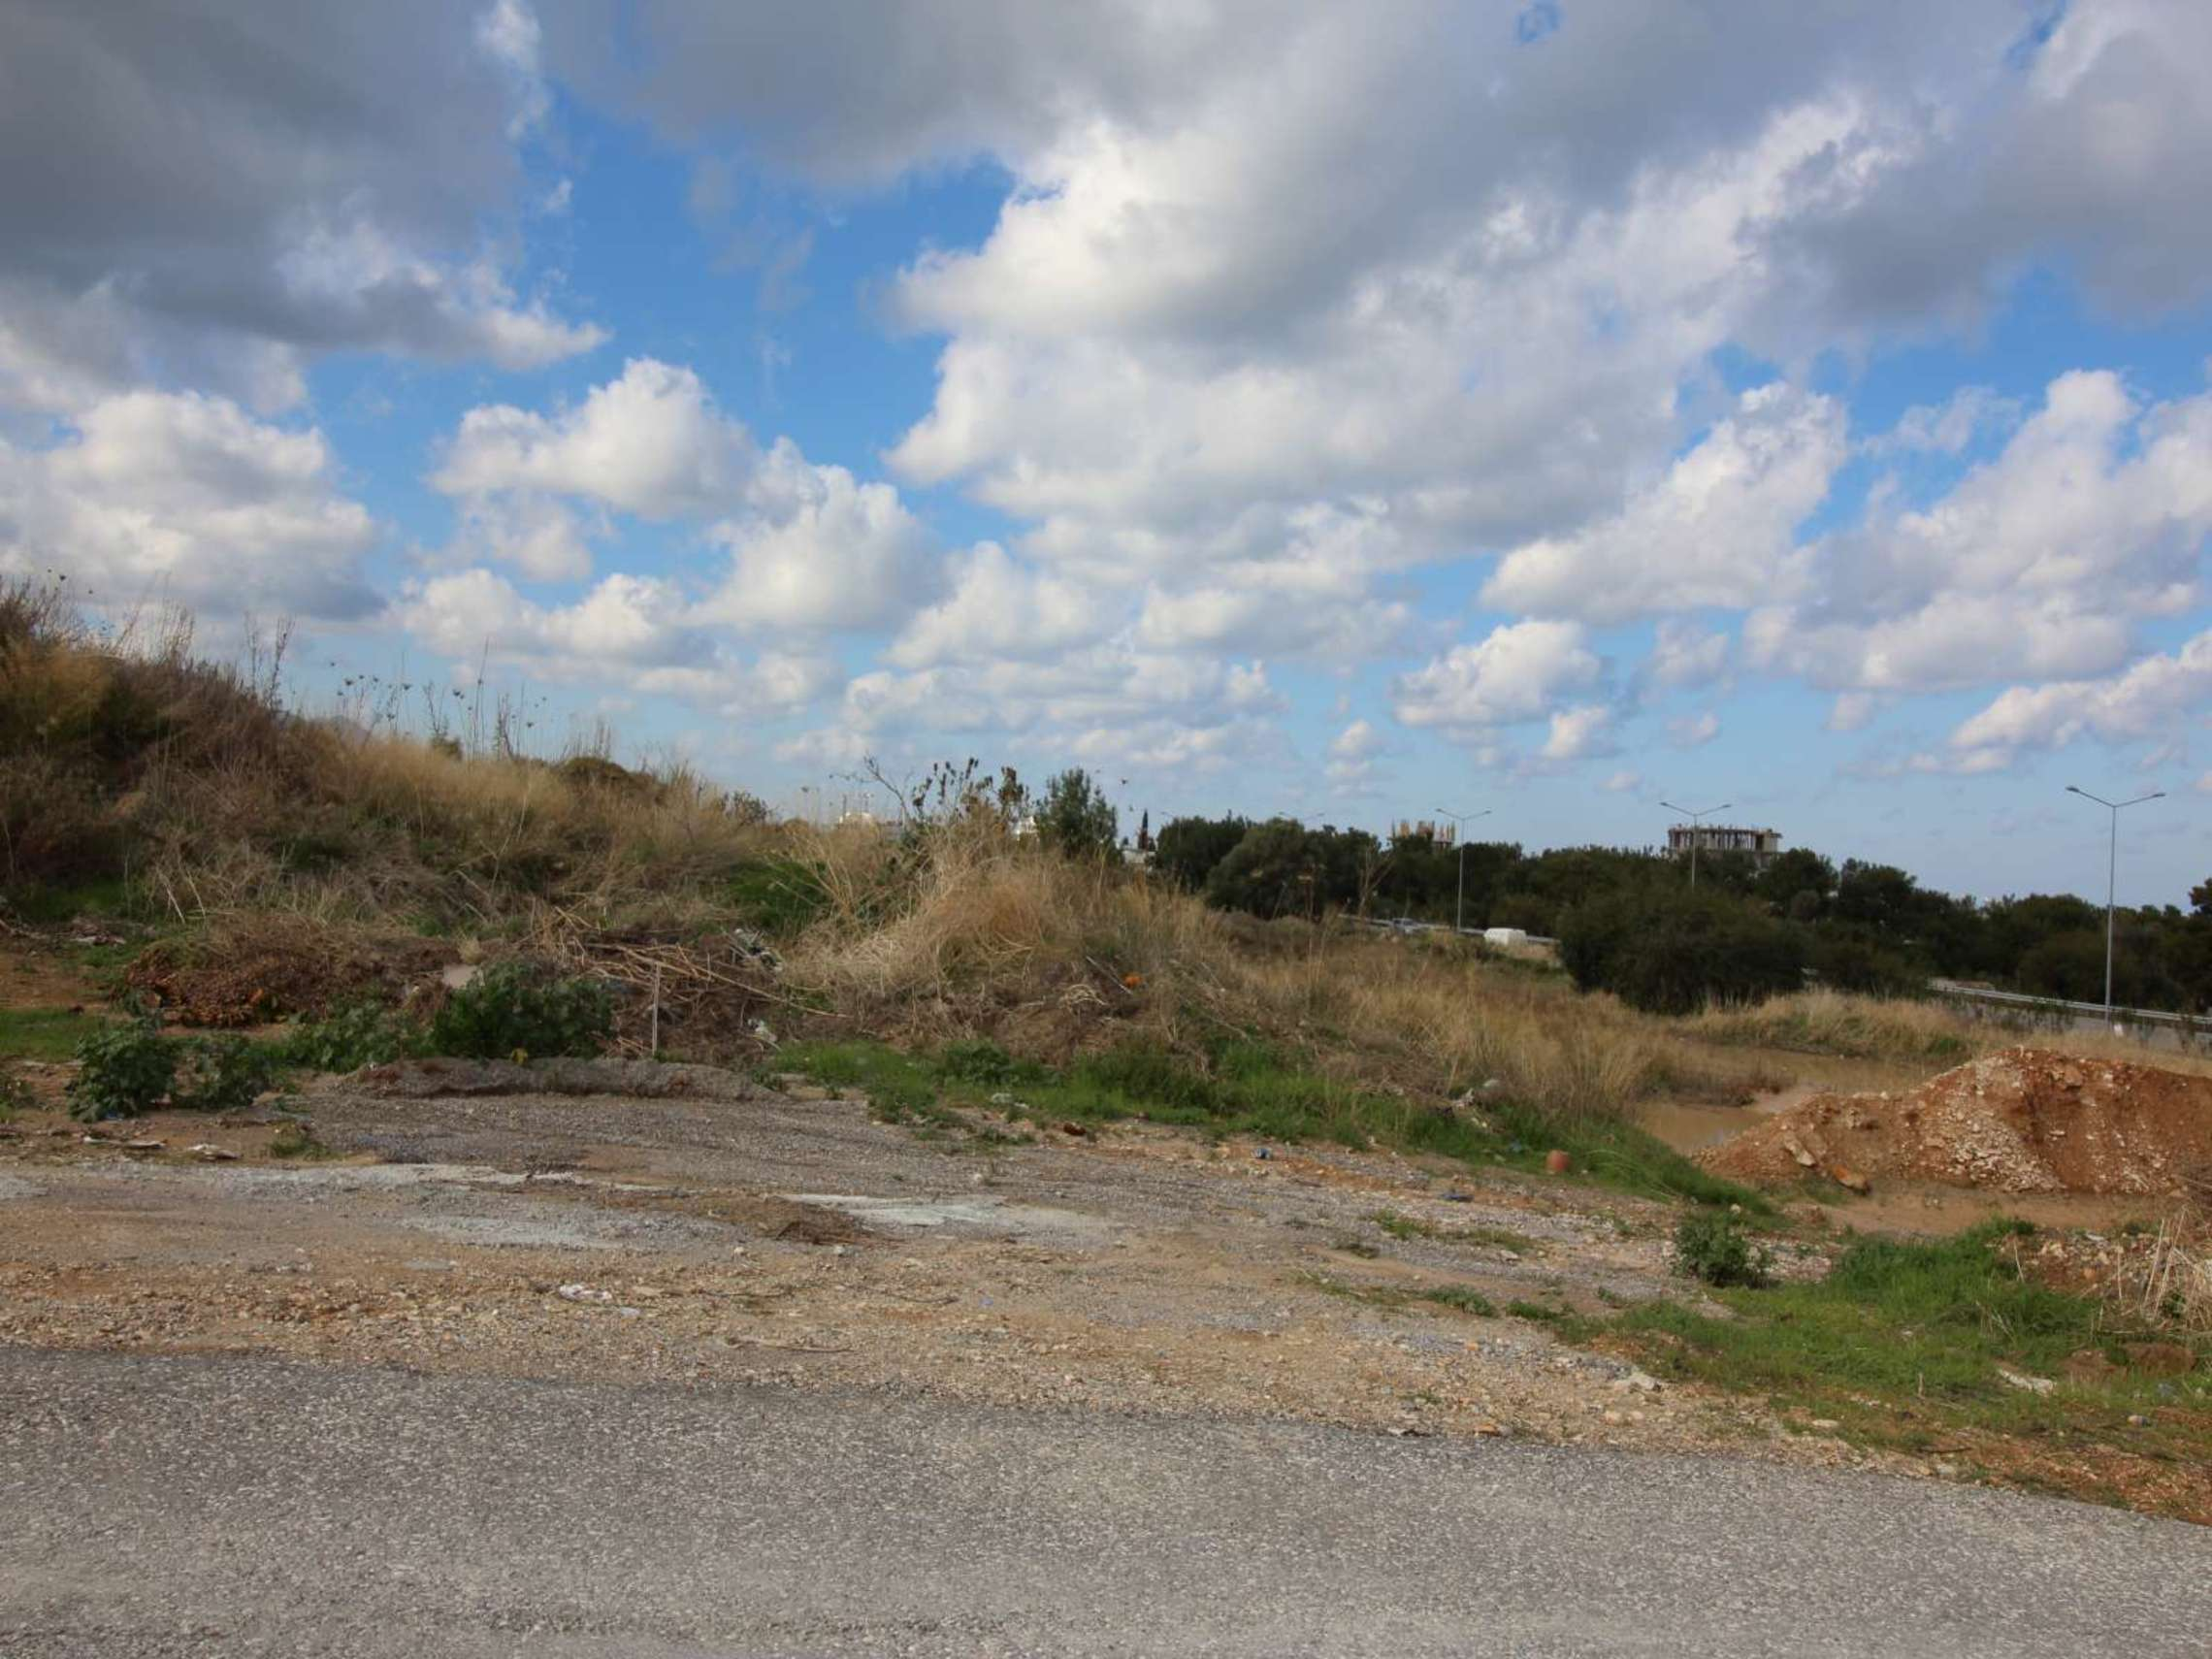 6 DONUM 2 EVLEK BUILDING PLOT IN UPPER KYRENIA